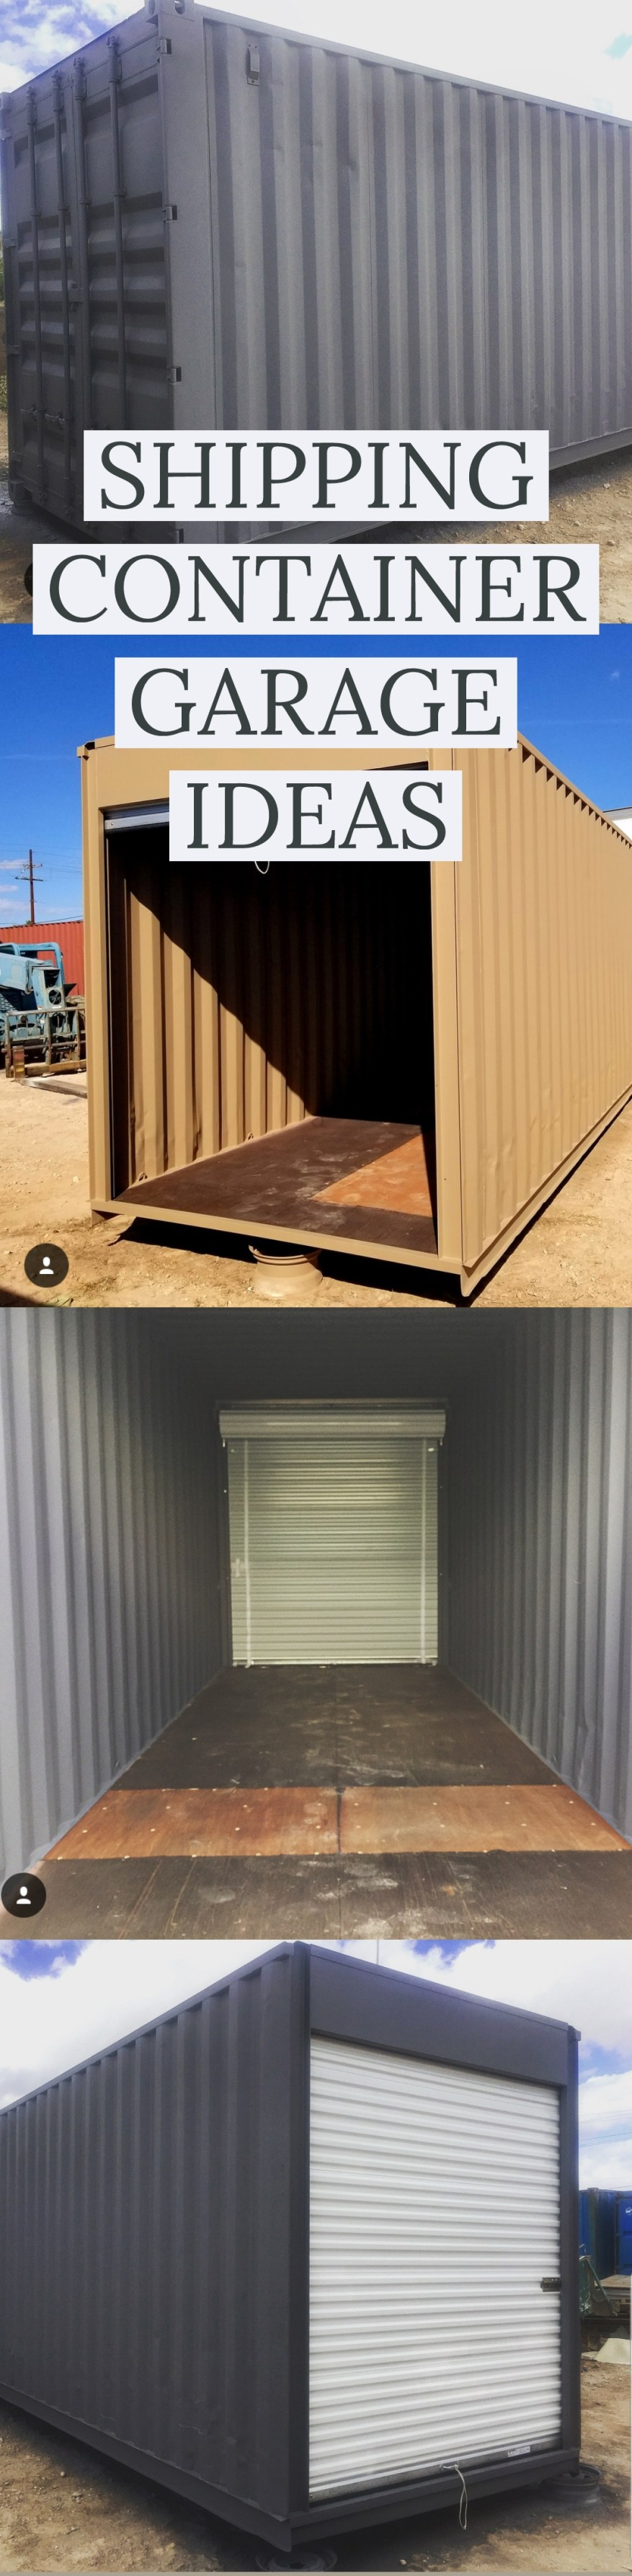 Car Storage Containers